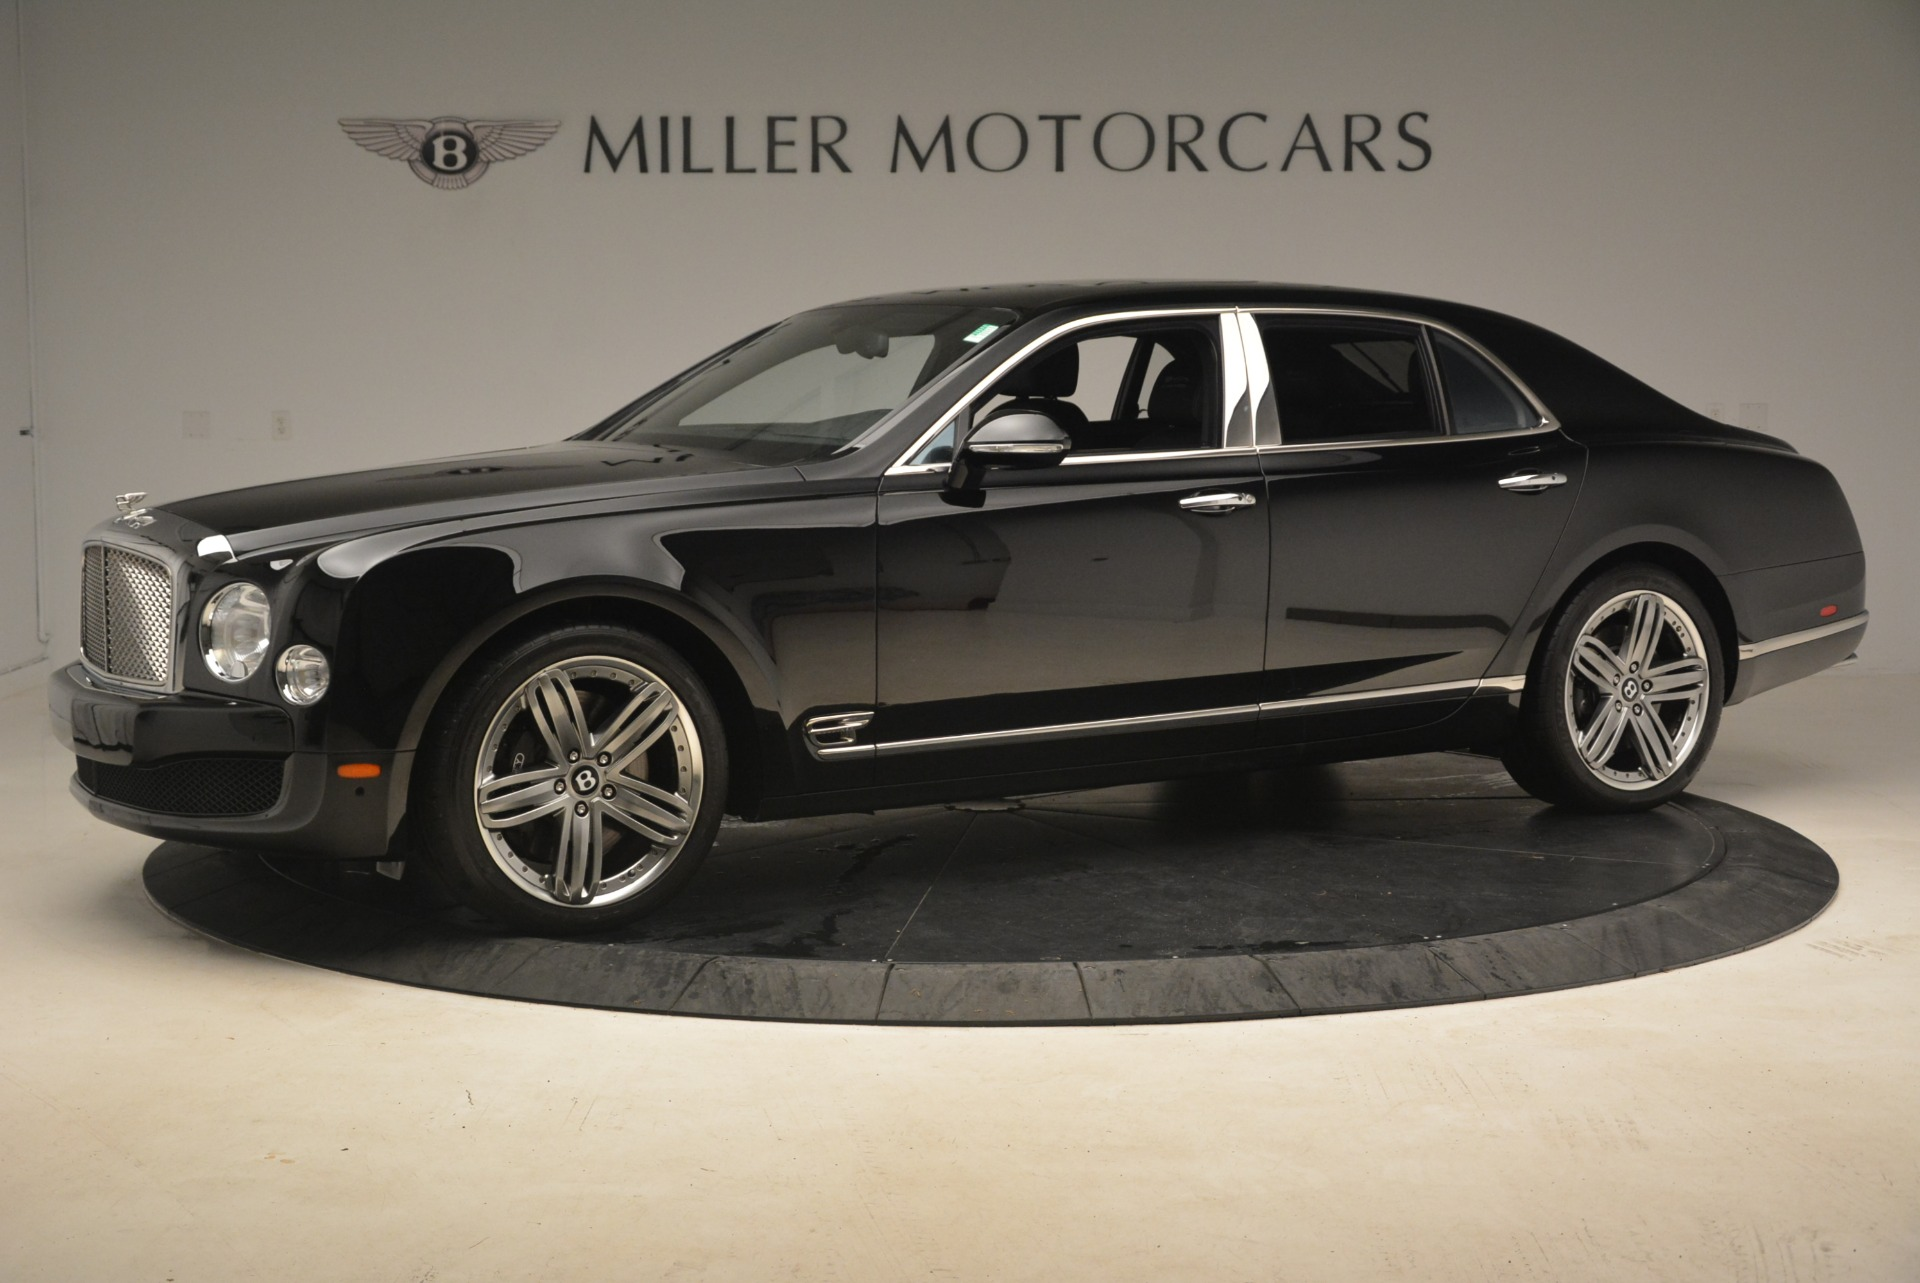 Used 2013 Bentley Mulsanne Le Mans Edition For Sale In Westport, CT 2255_p2